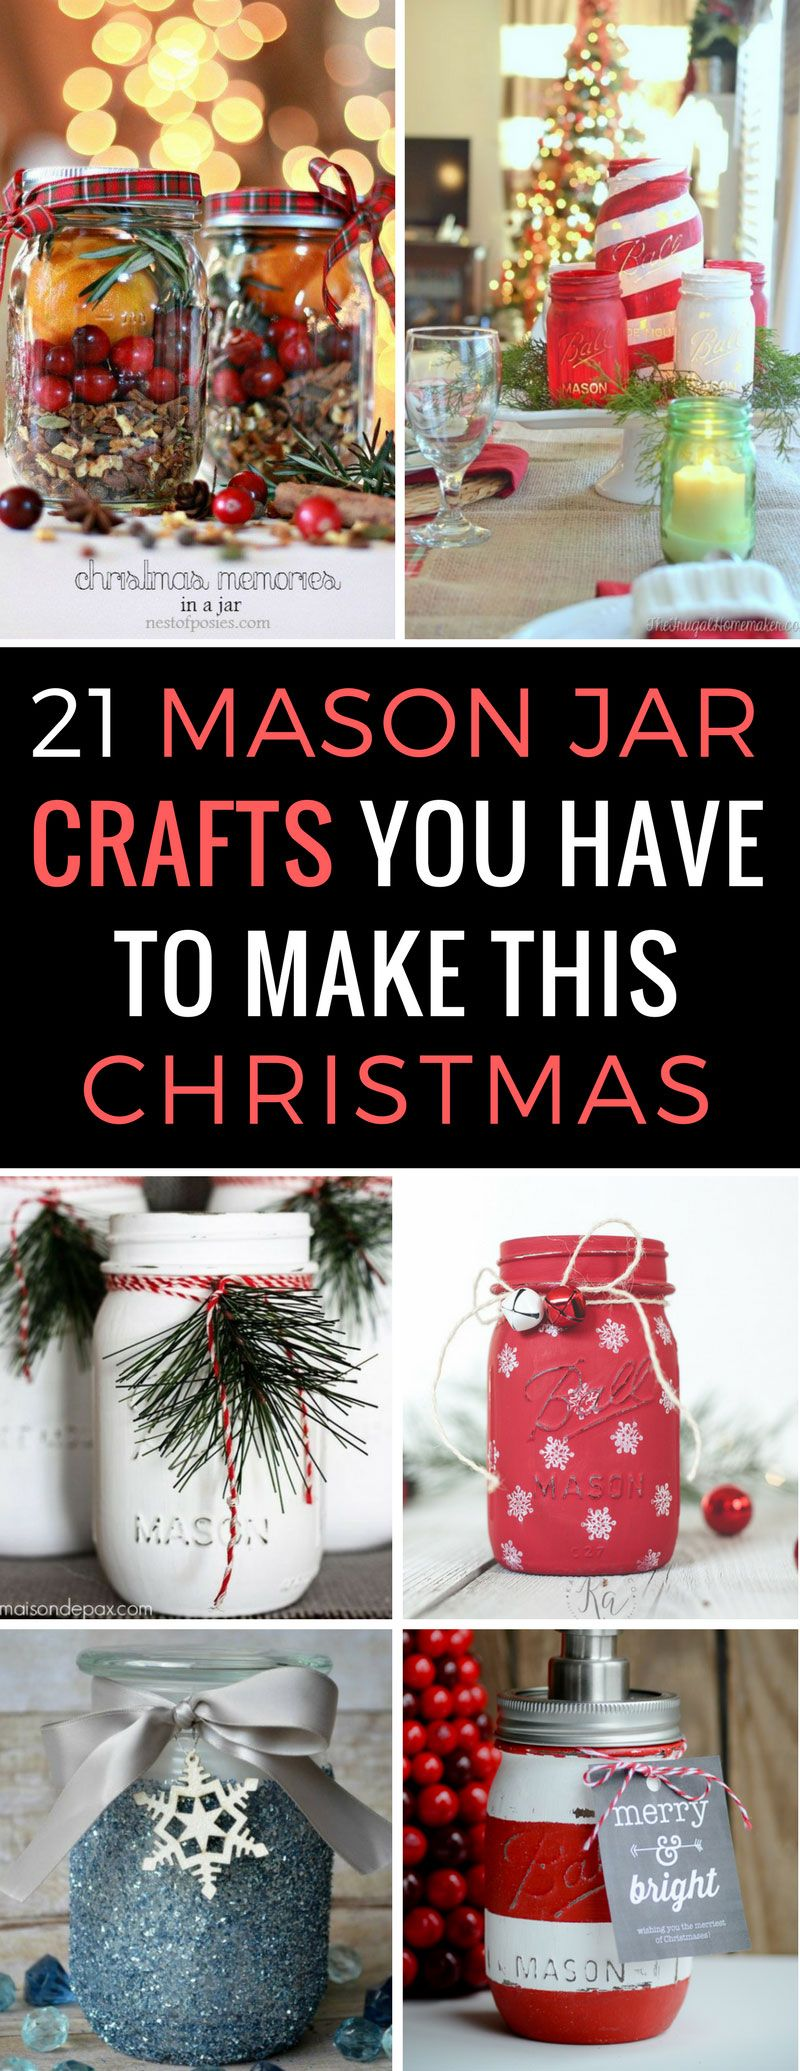 Mason Jar Christmas Craft Ideas Part - 20: Christmas Mason Jar Crafts - If You Want Some Festive DIY Ideas To Decorate  Your Home